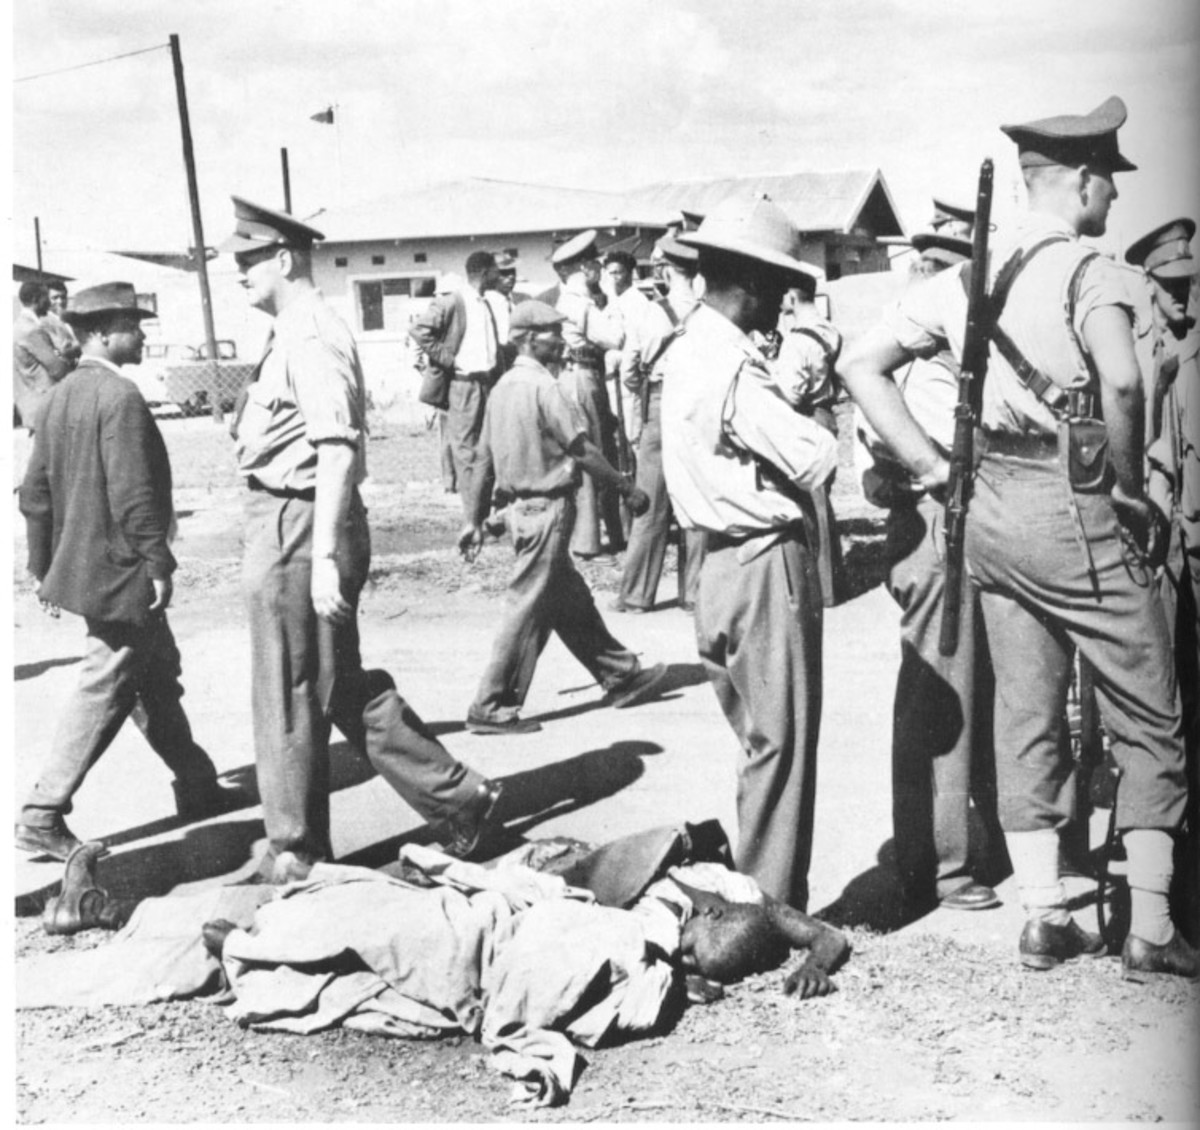 Aftermath of the Sharpeville massacre. 21 March 1960